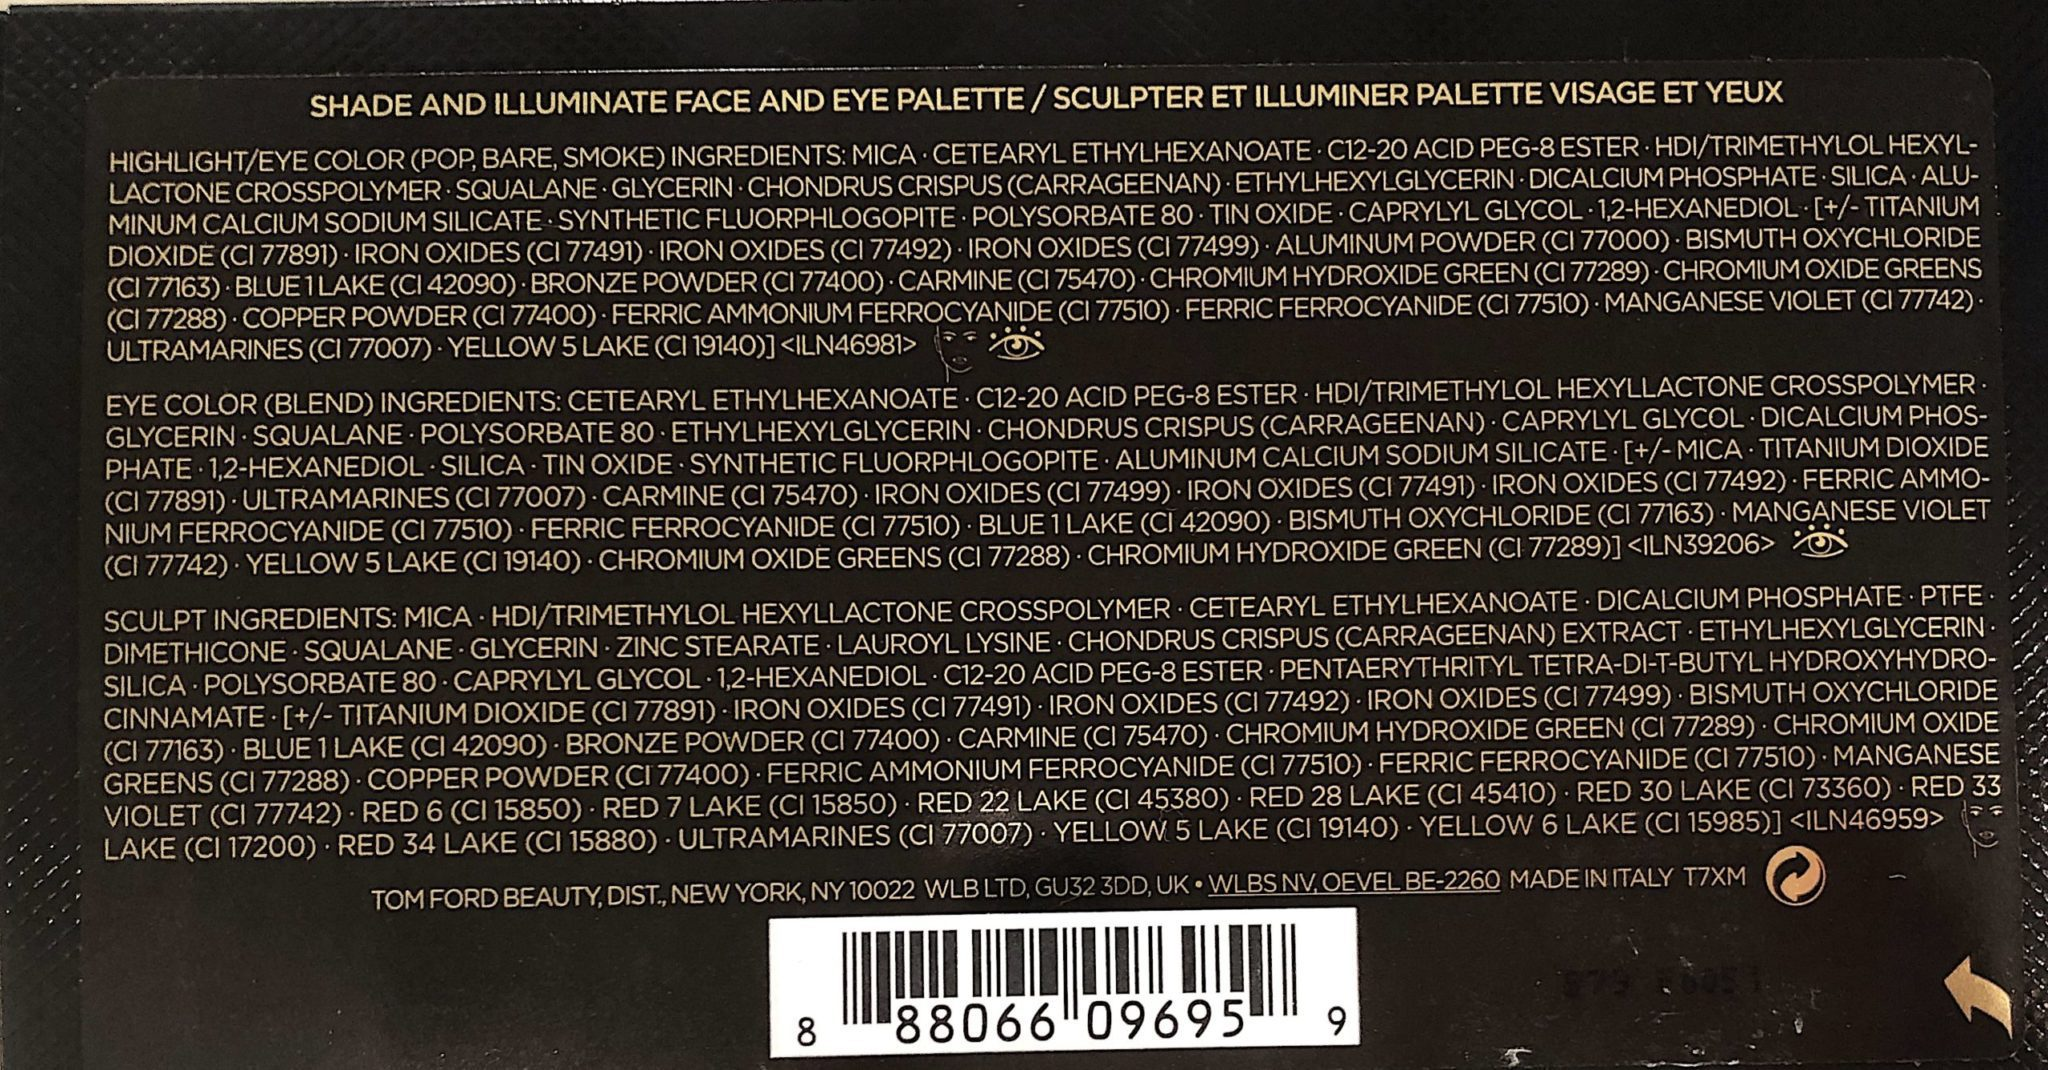 SHADE & ILLUMINATE FACE & EYE PALETTE 2020 IN RED HARNESS- INGREDIENTS